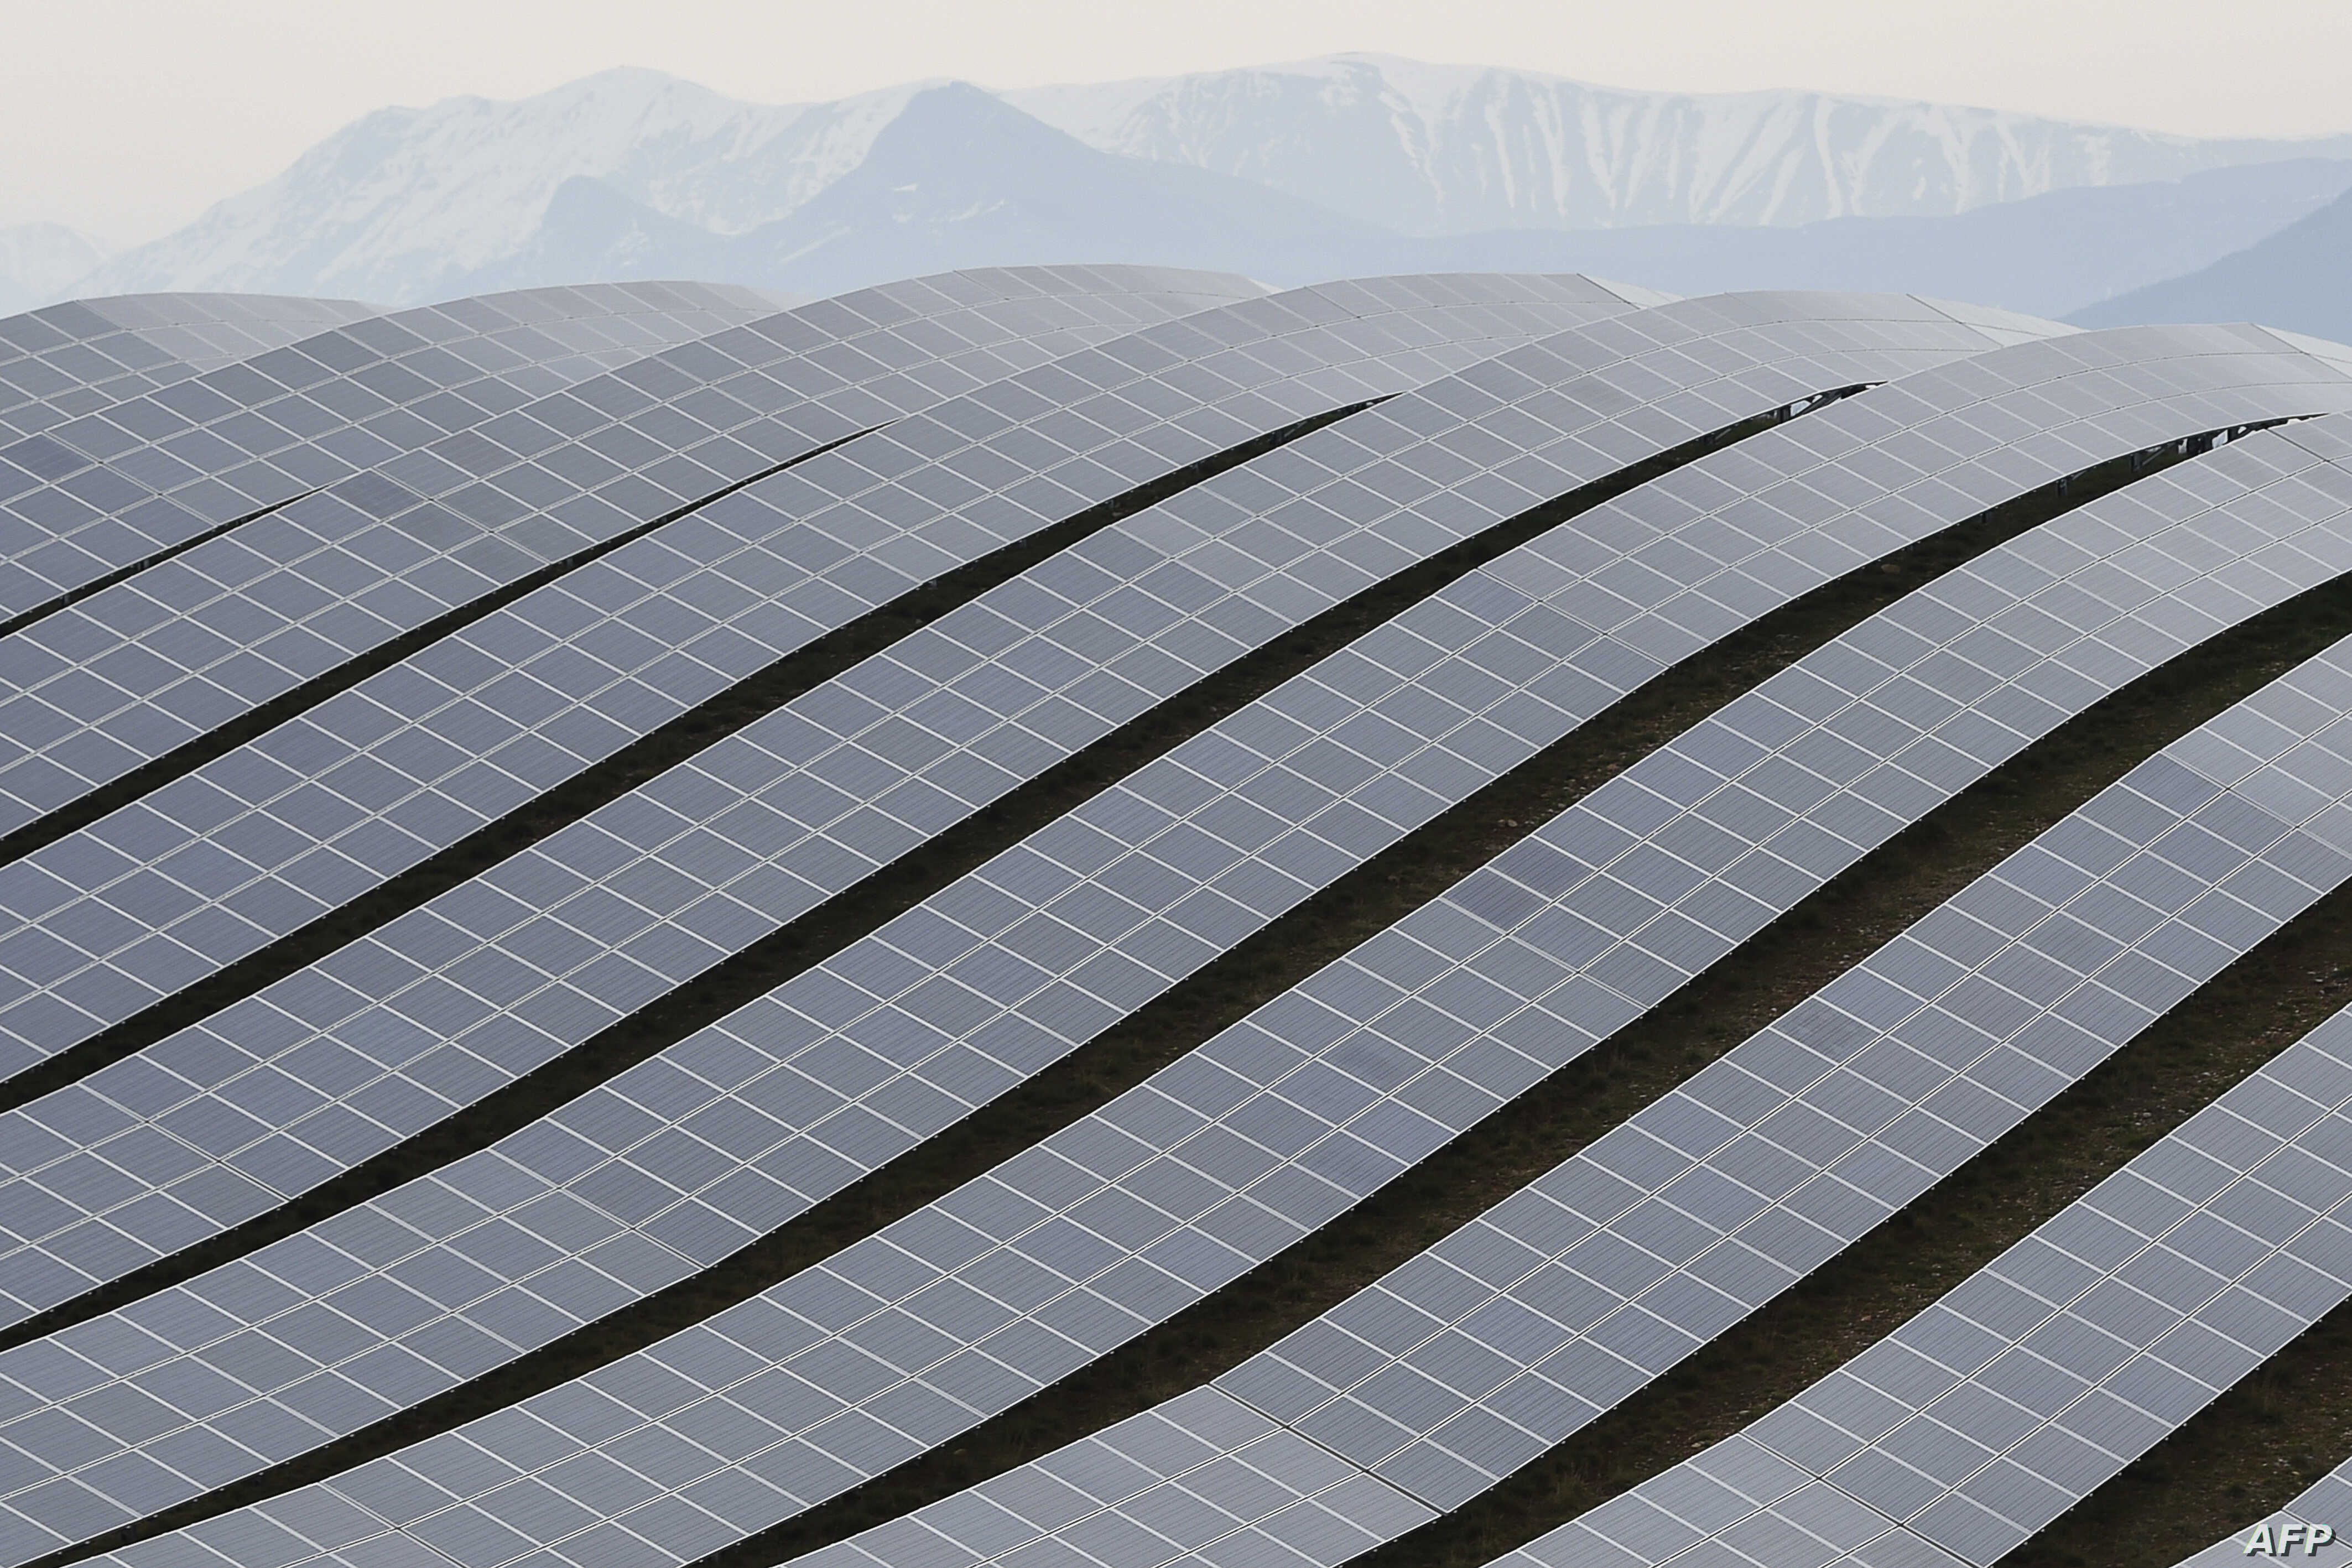 Solar panels are seen at the Les Mees solar power plant in Les Mees, southern France, March 20, 2015.